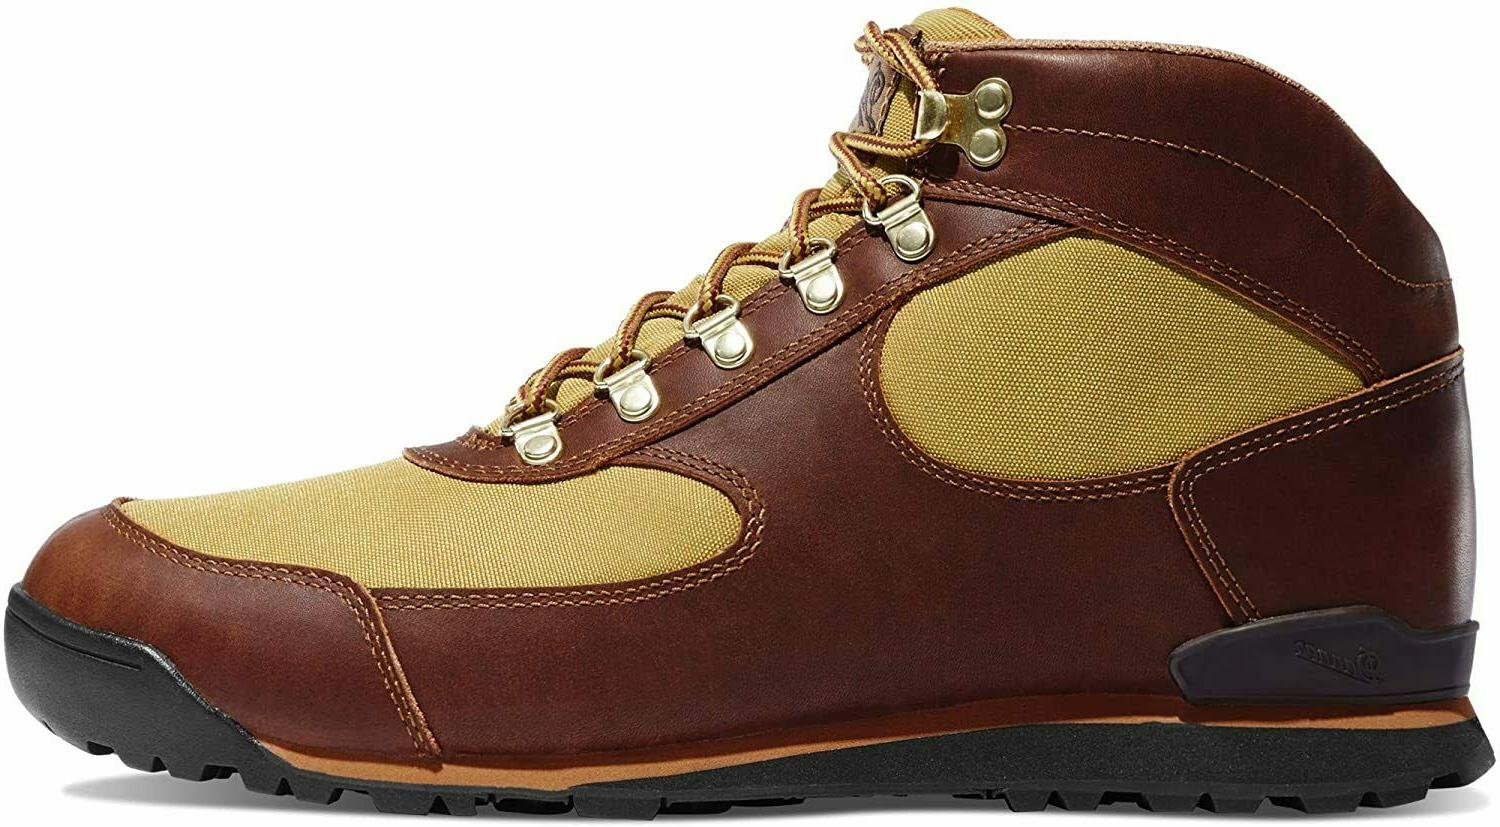 jag work hiking boots in monk s